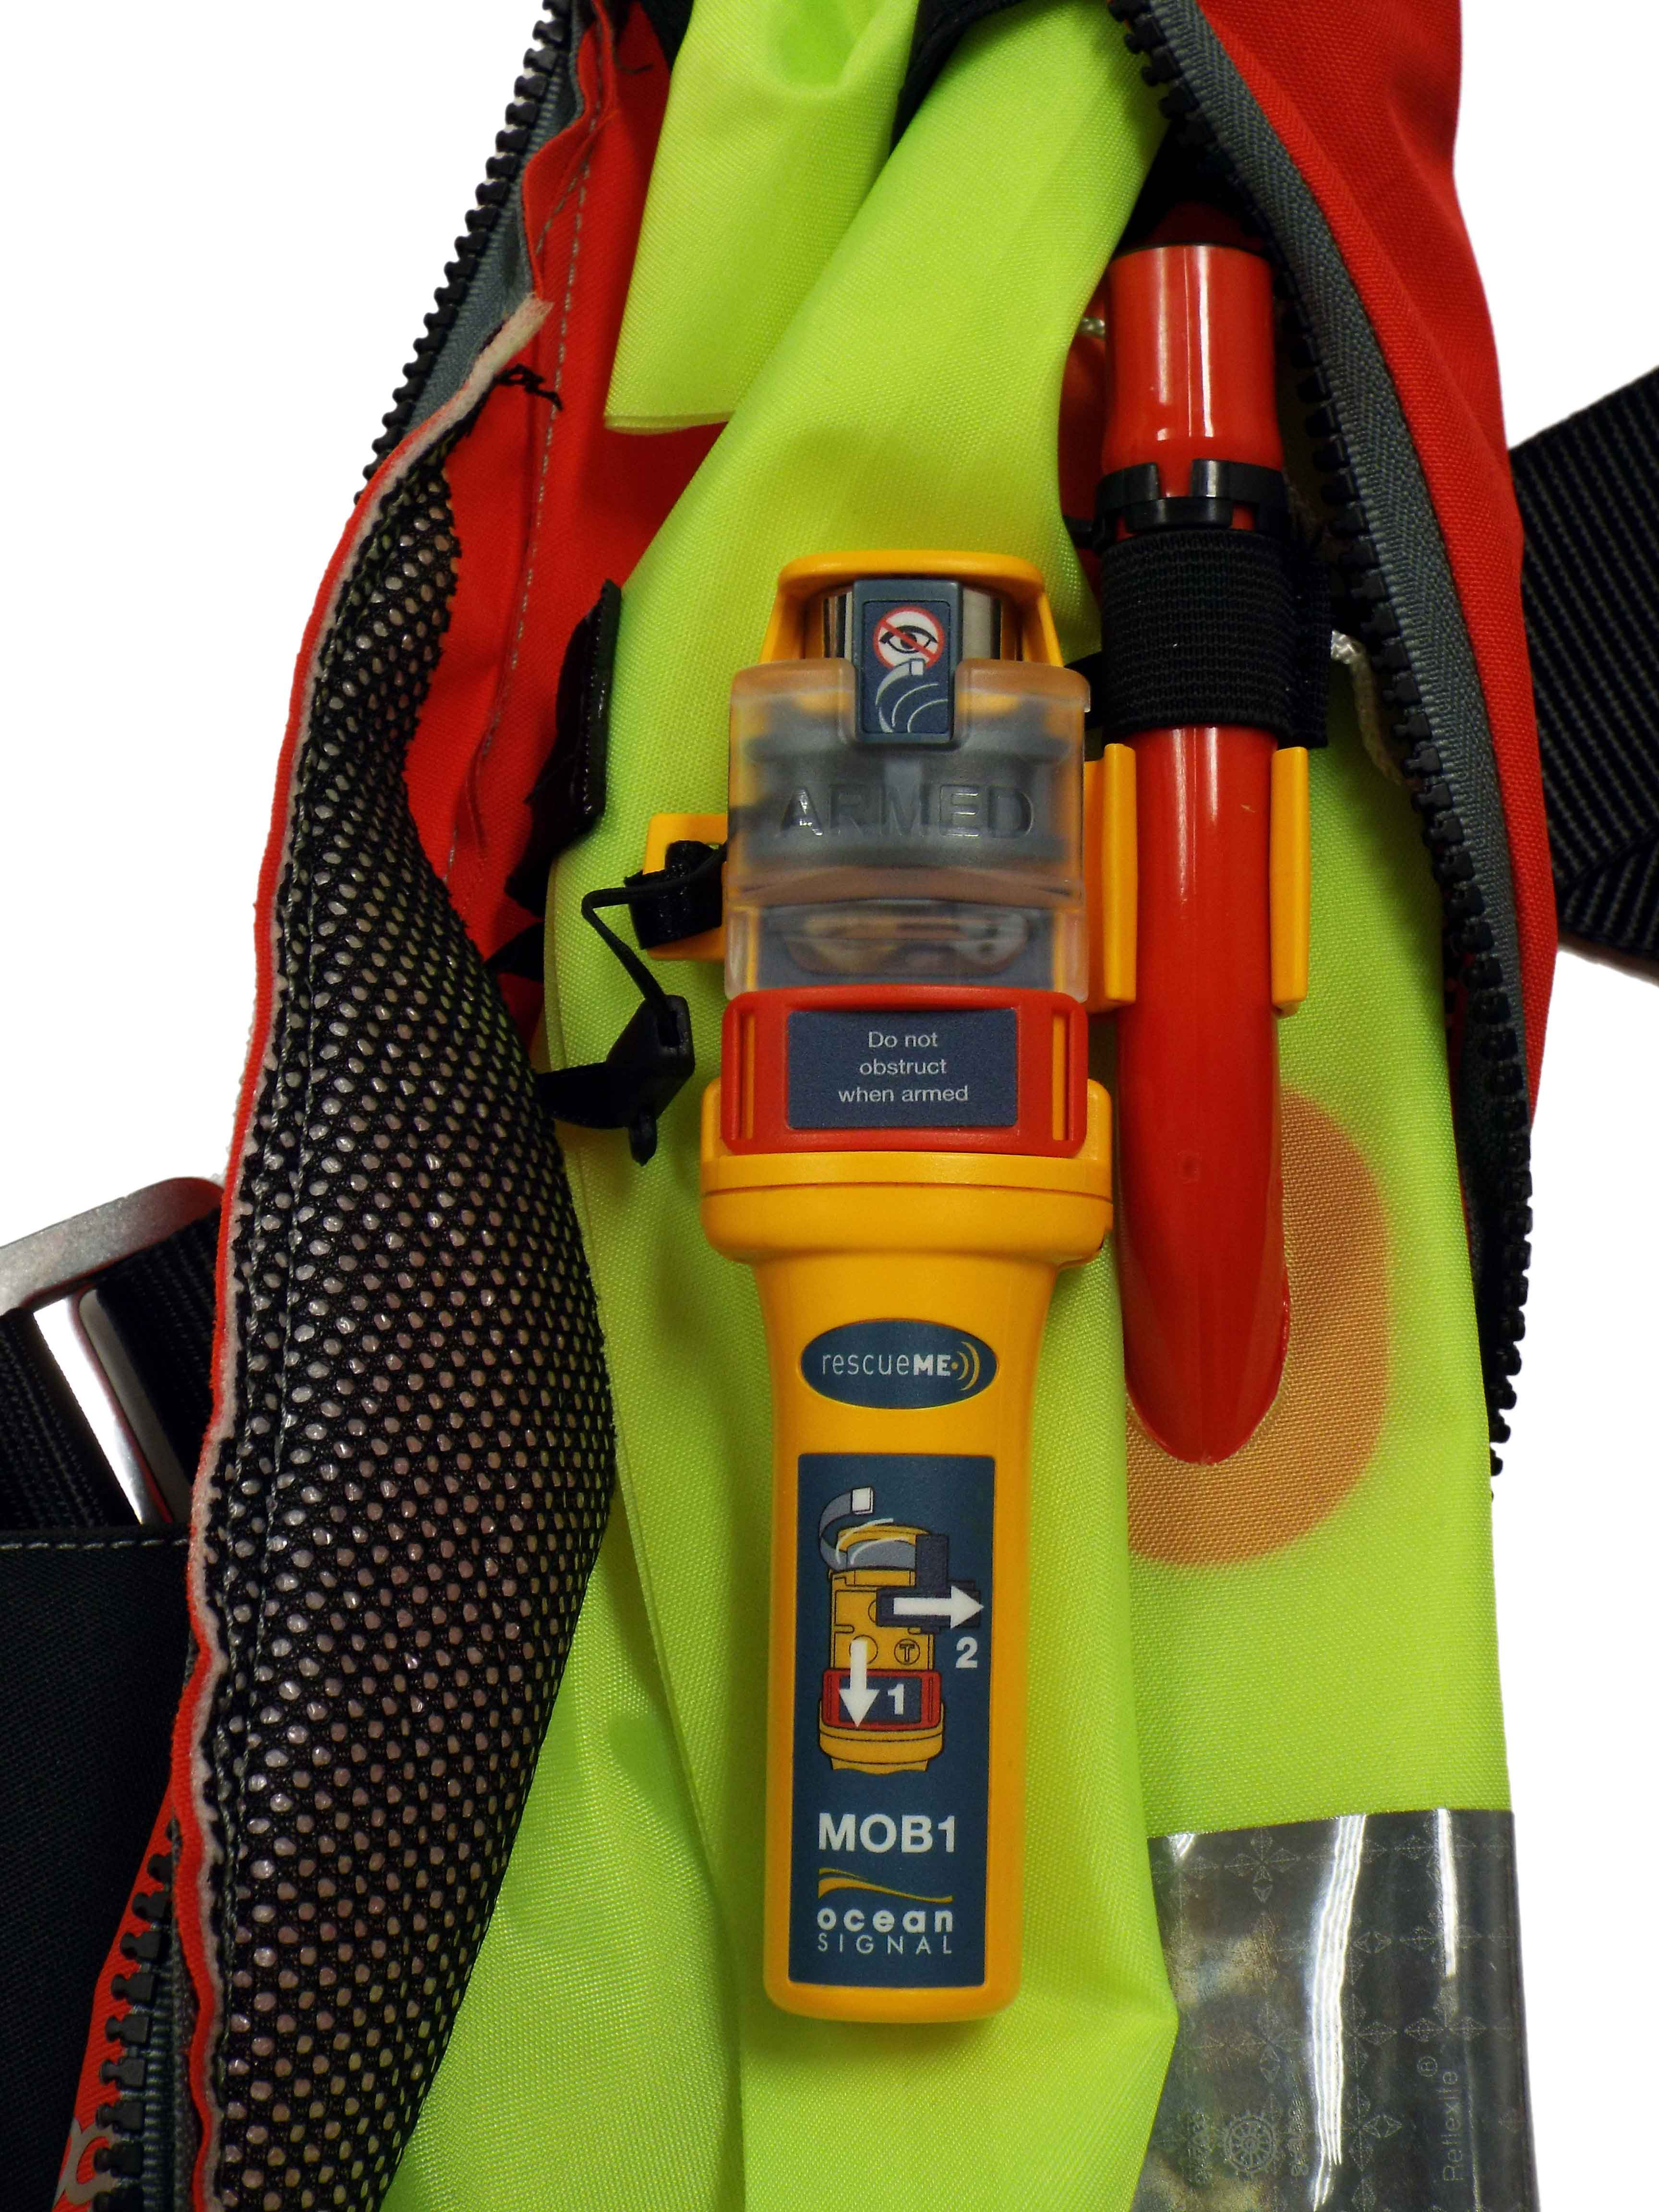 MOB1 in Clipper Life Jacket web size